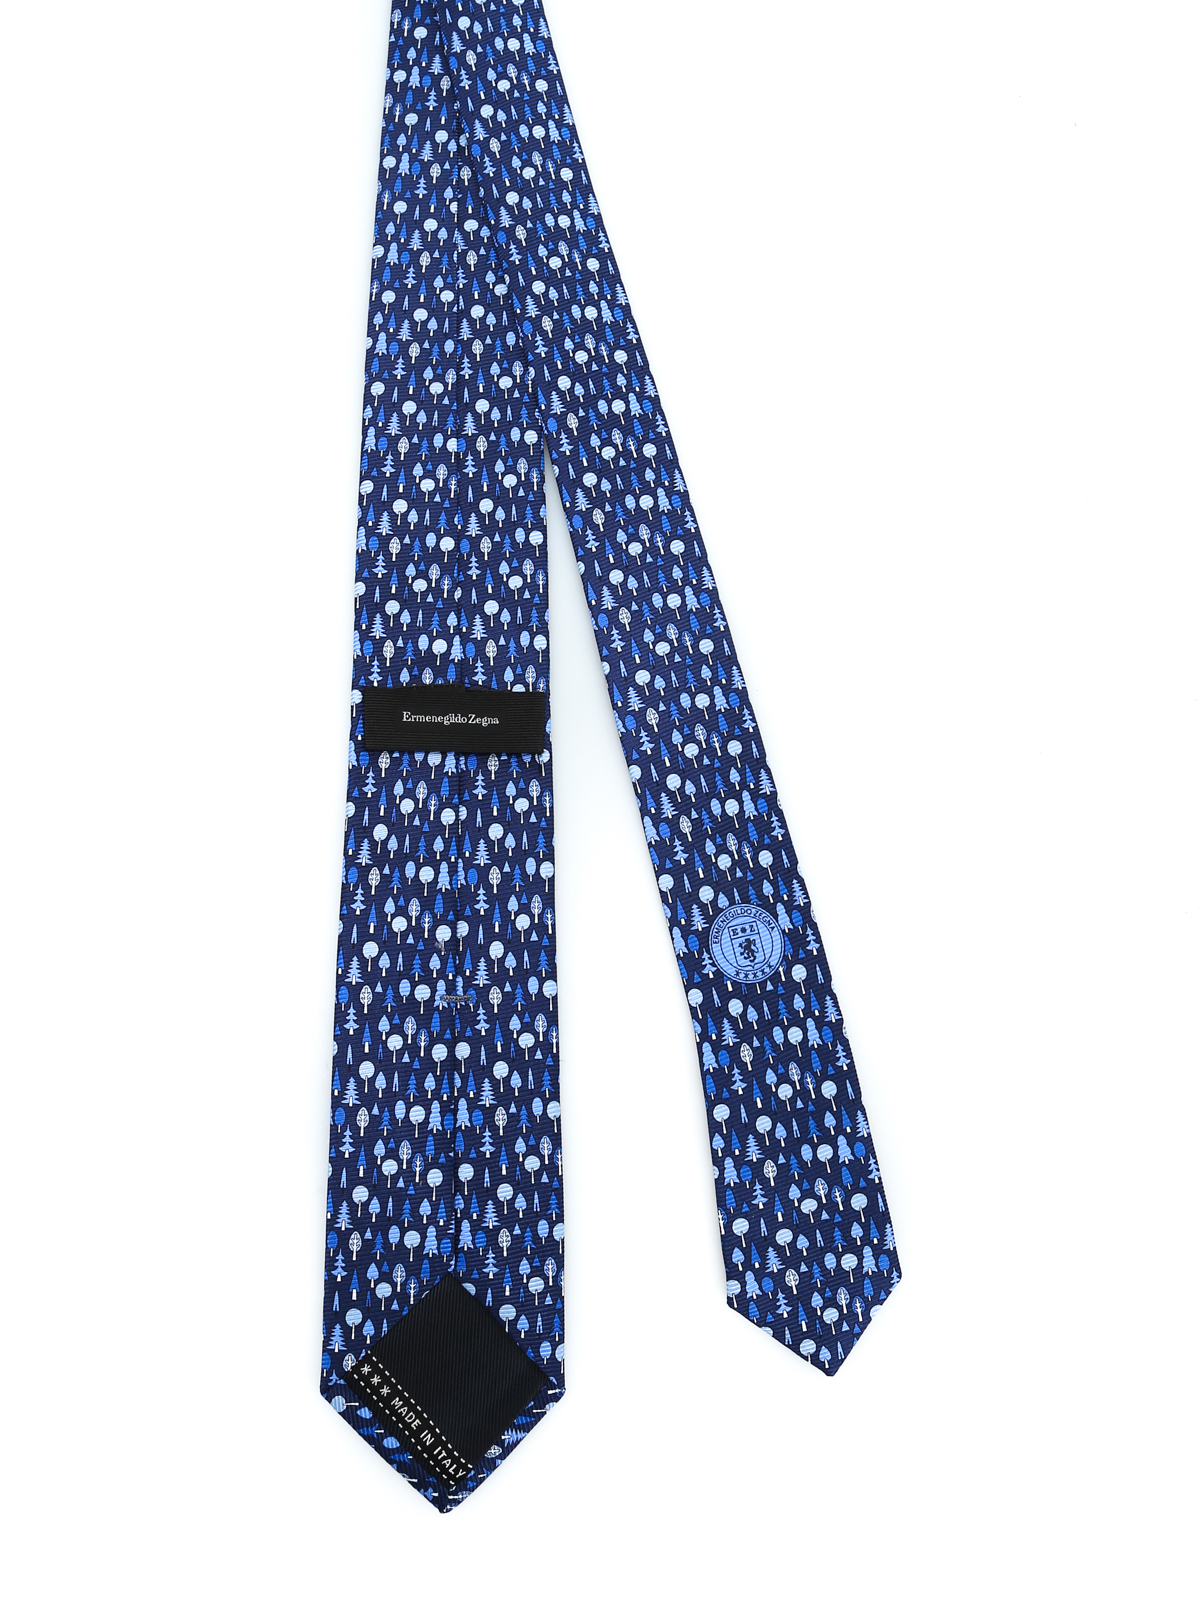 af91784bc7 Ermenegildo Zegna - Dark blue silk tree printed tie - ties & bow ...